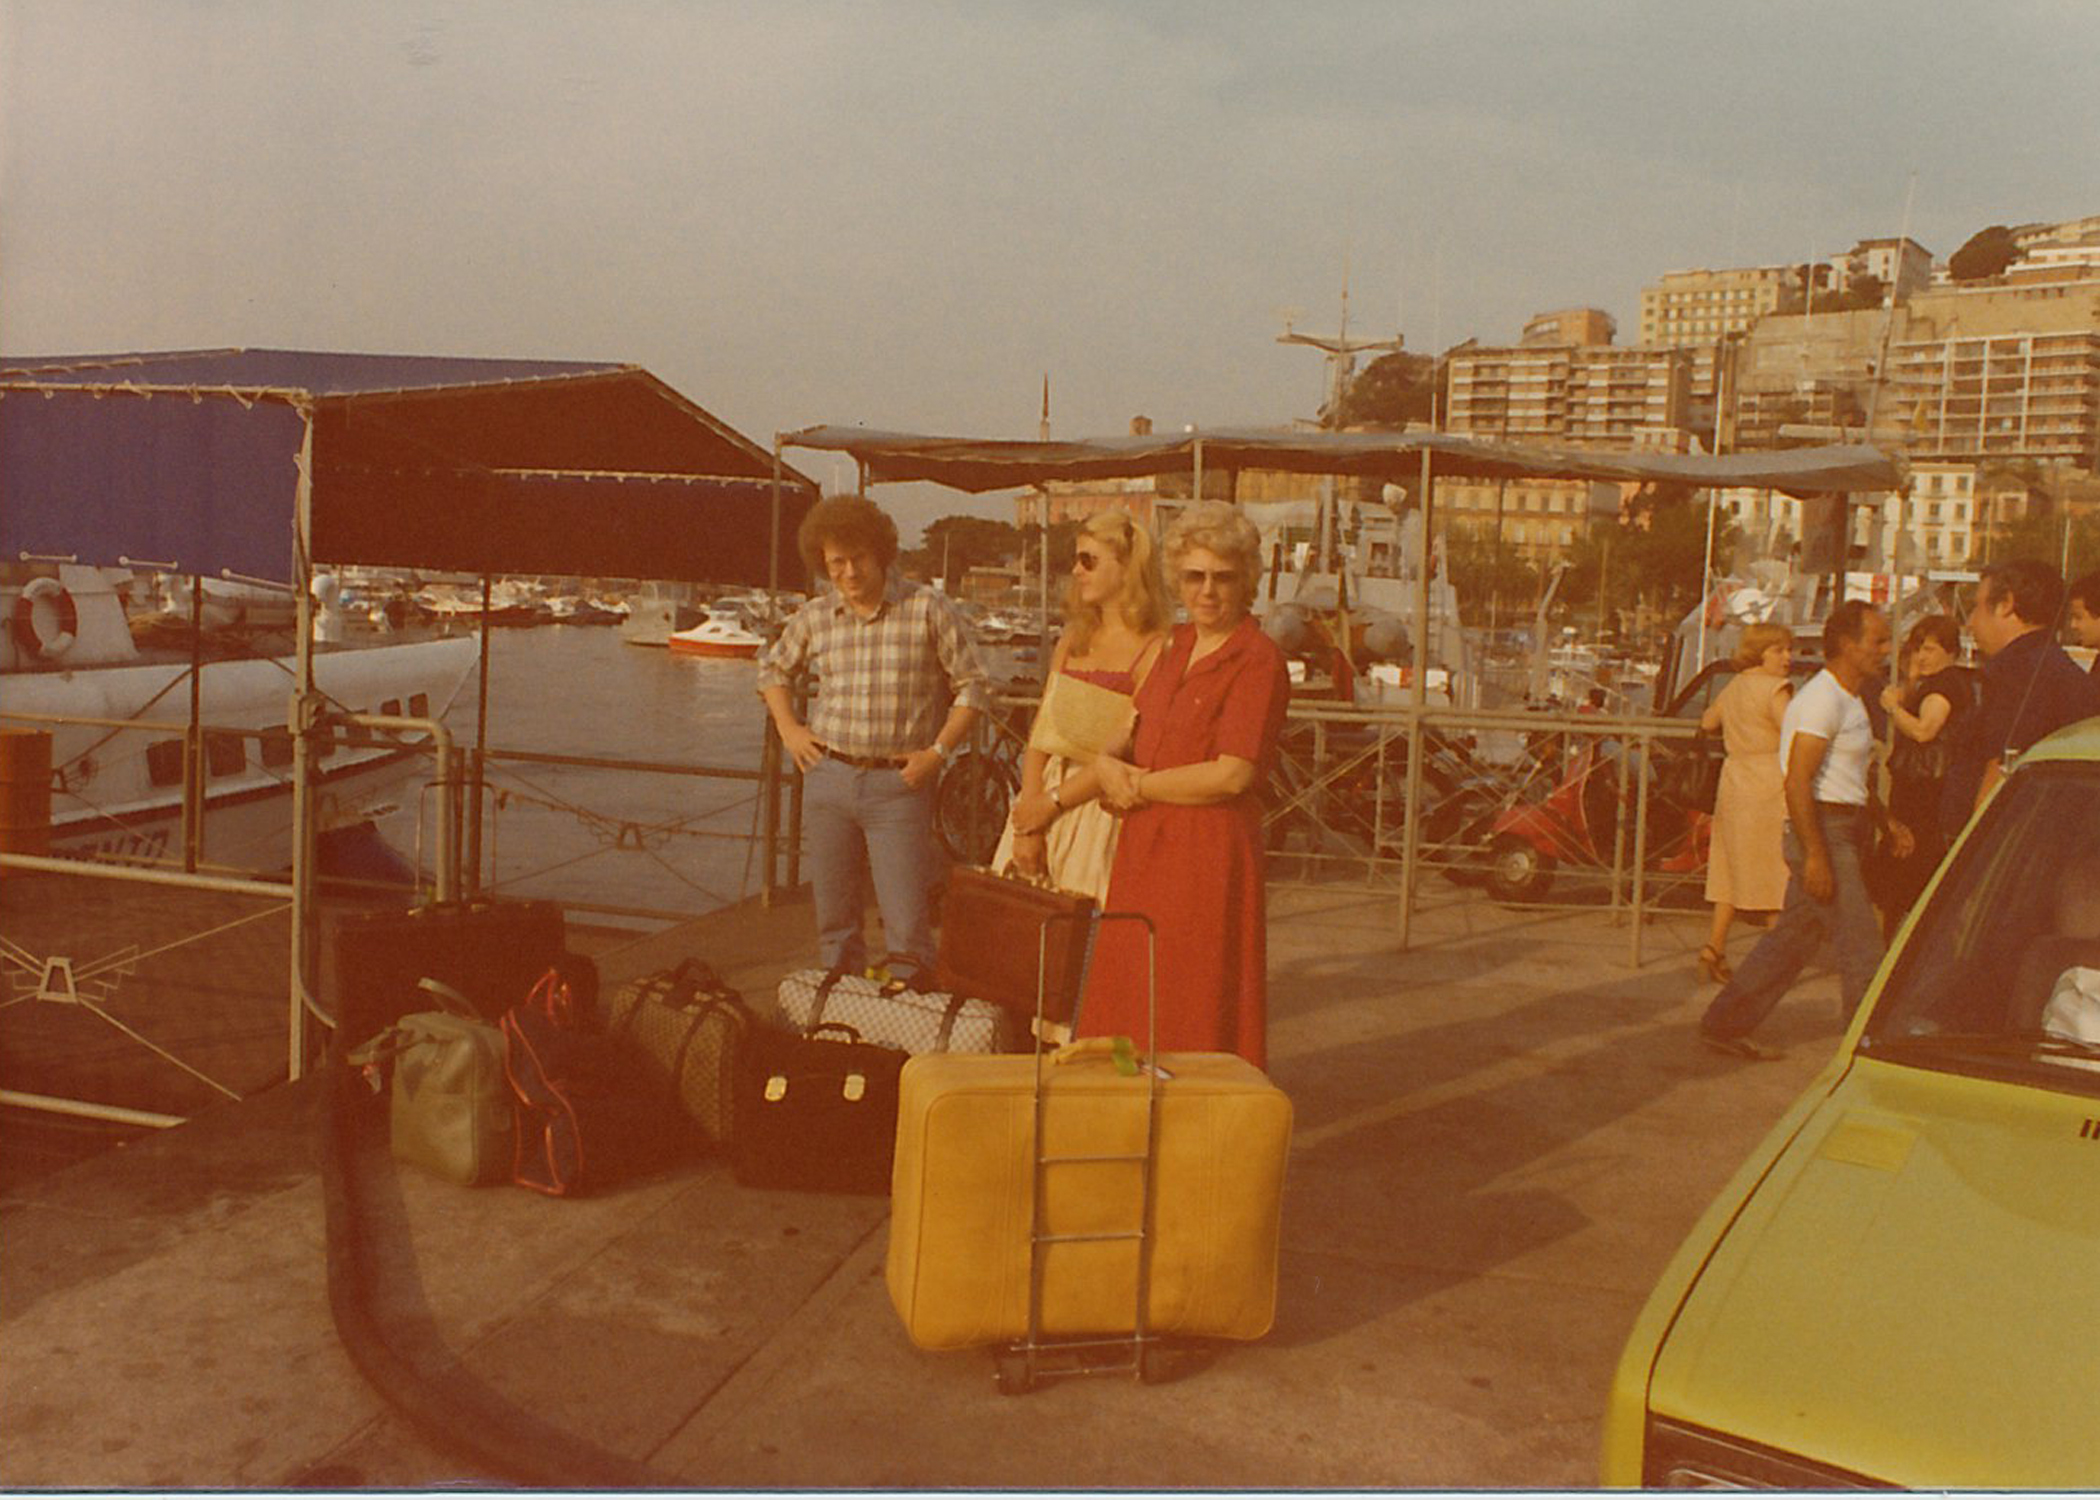 Joan with my parents in Capri, Italy. They packed light for the occasion...ha! Check out the lime green car (Fiat?).